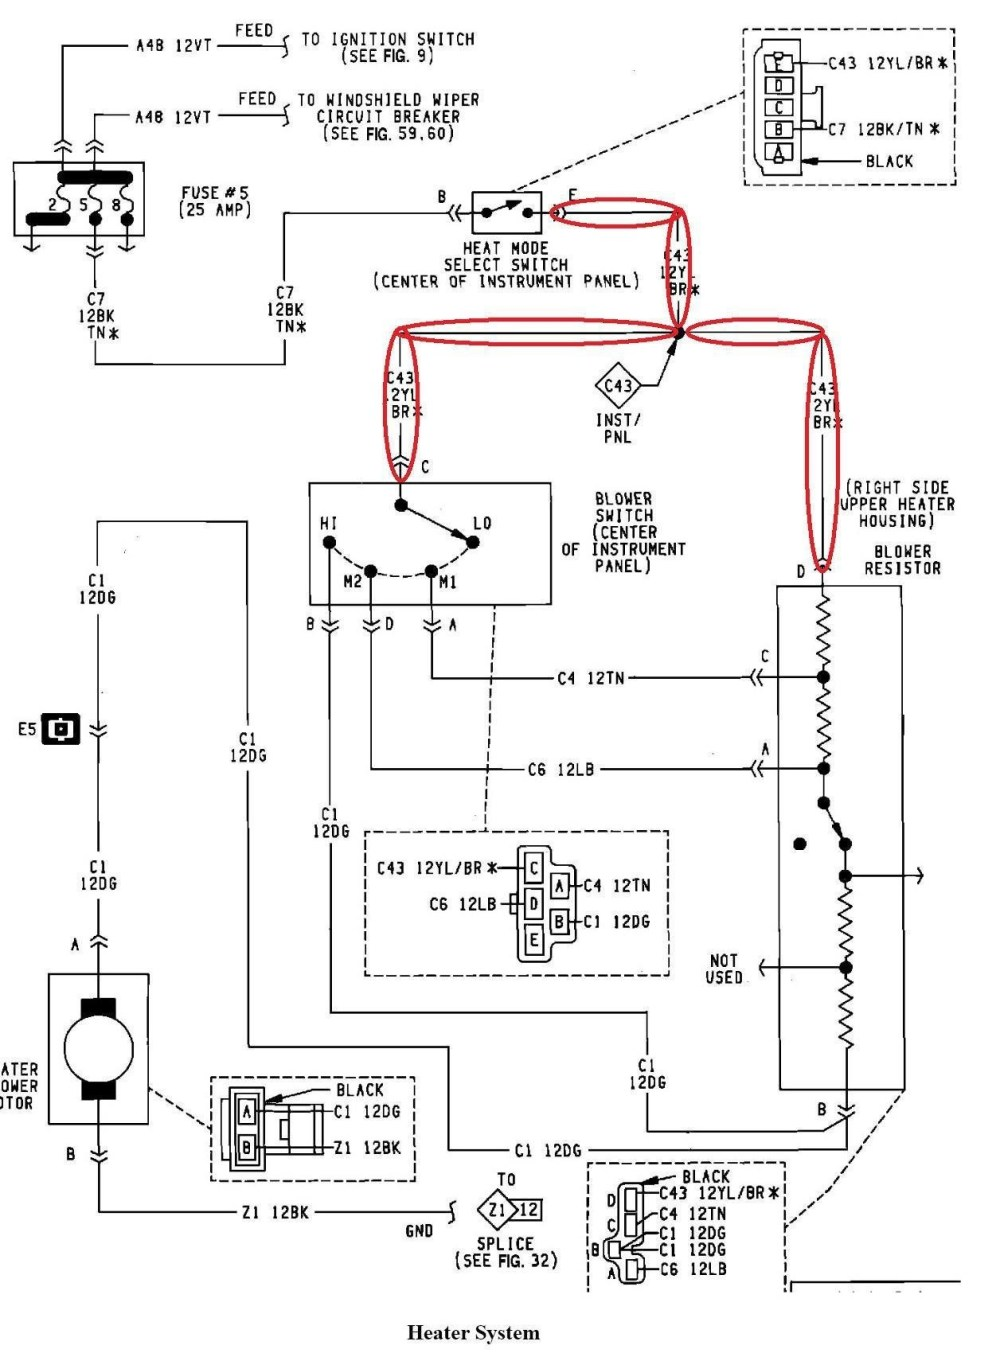 medium resolution of wiring diagram ezgo 36 volt wiring diagram expert ezgo 36 volt battery diagram ezgo circuit diagrams